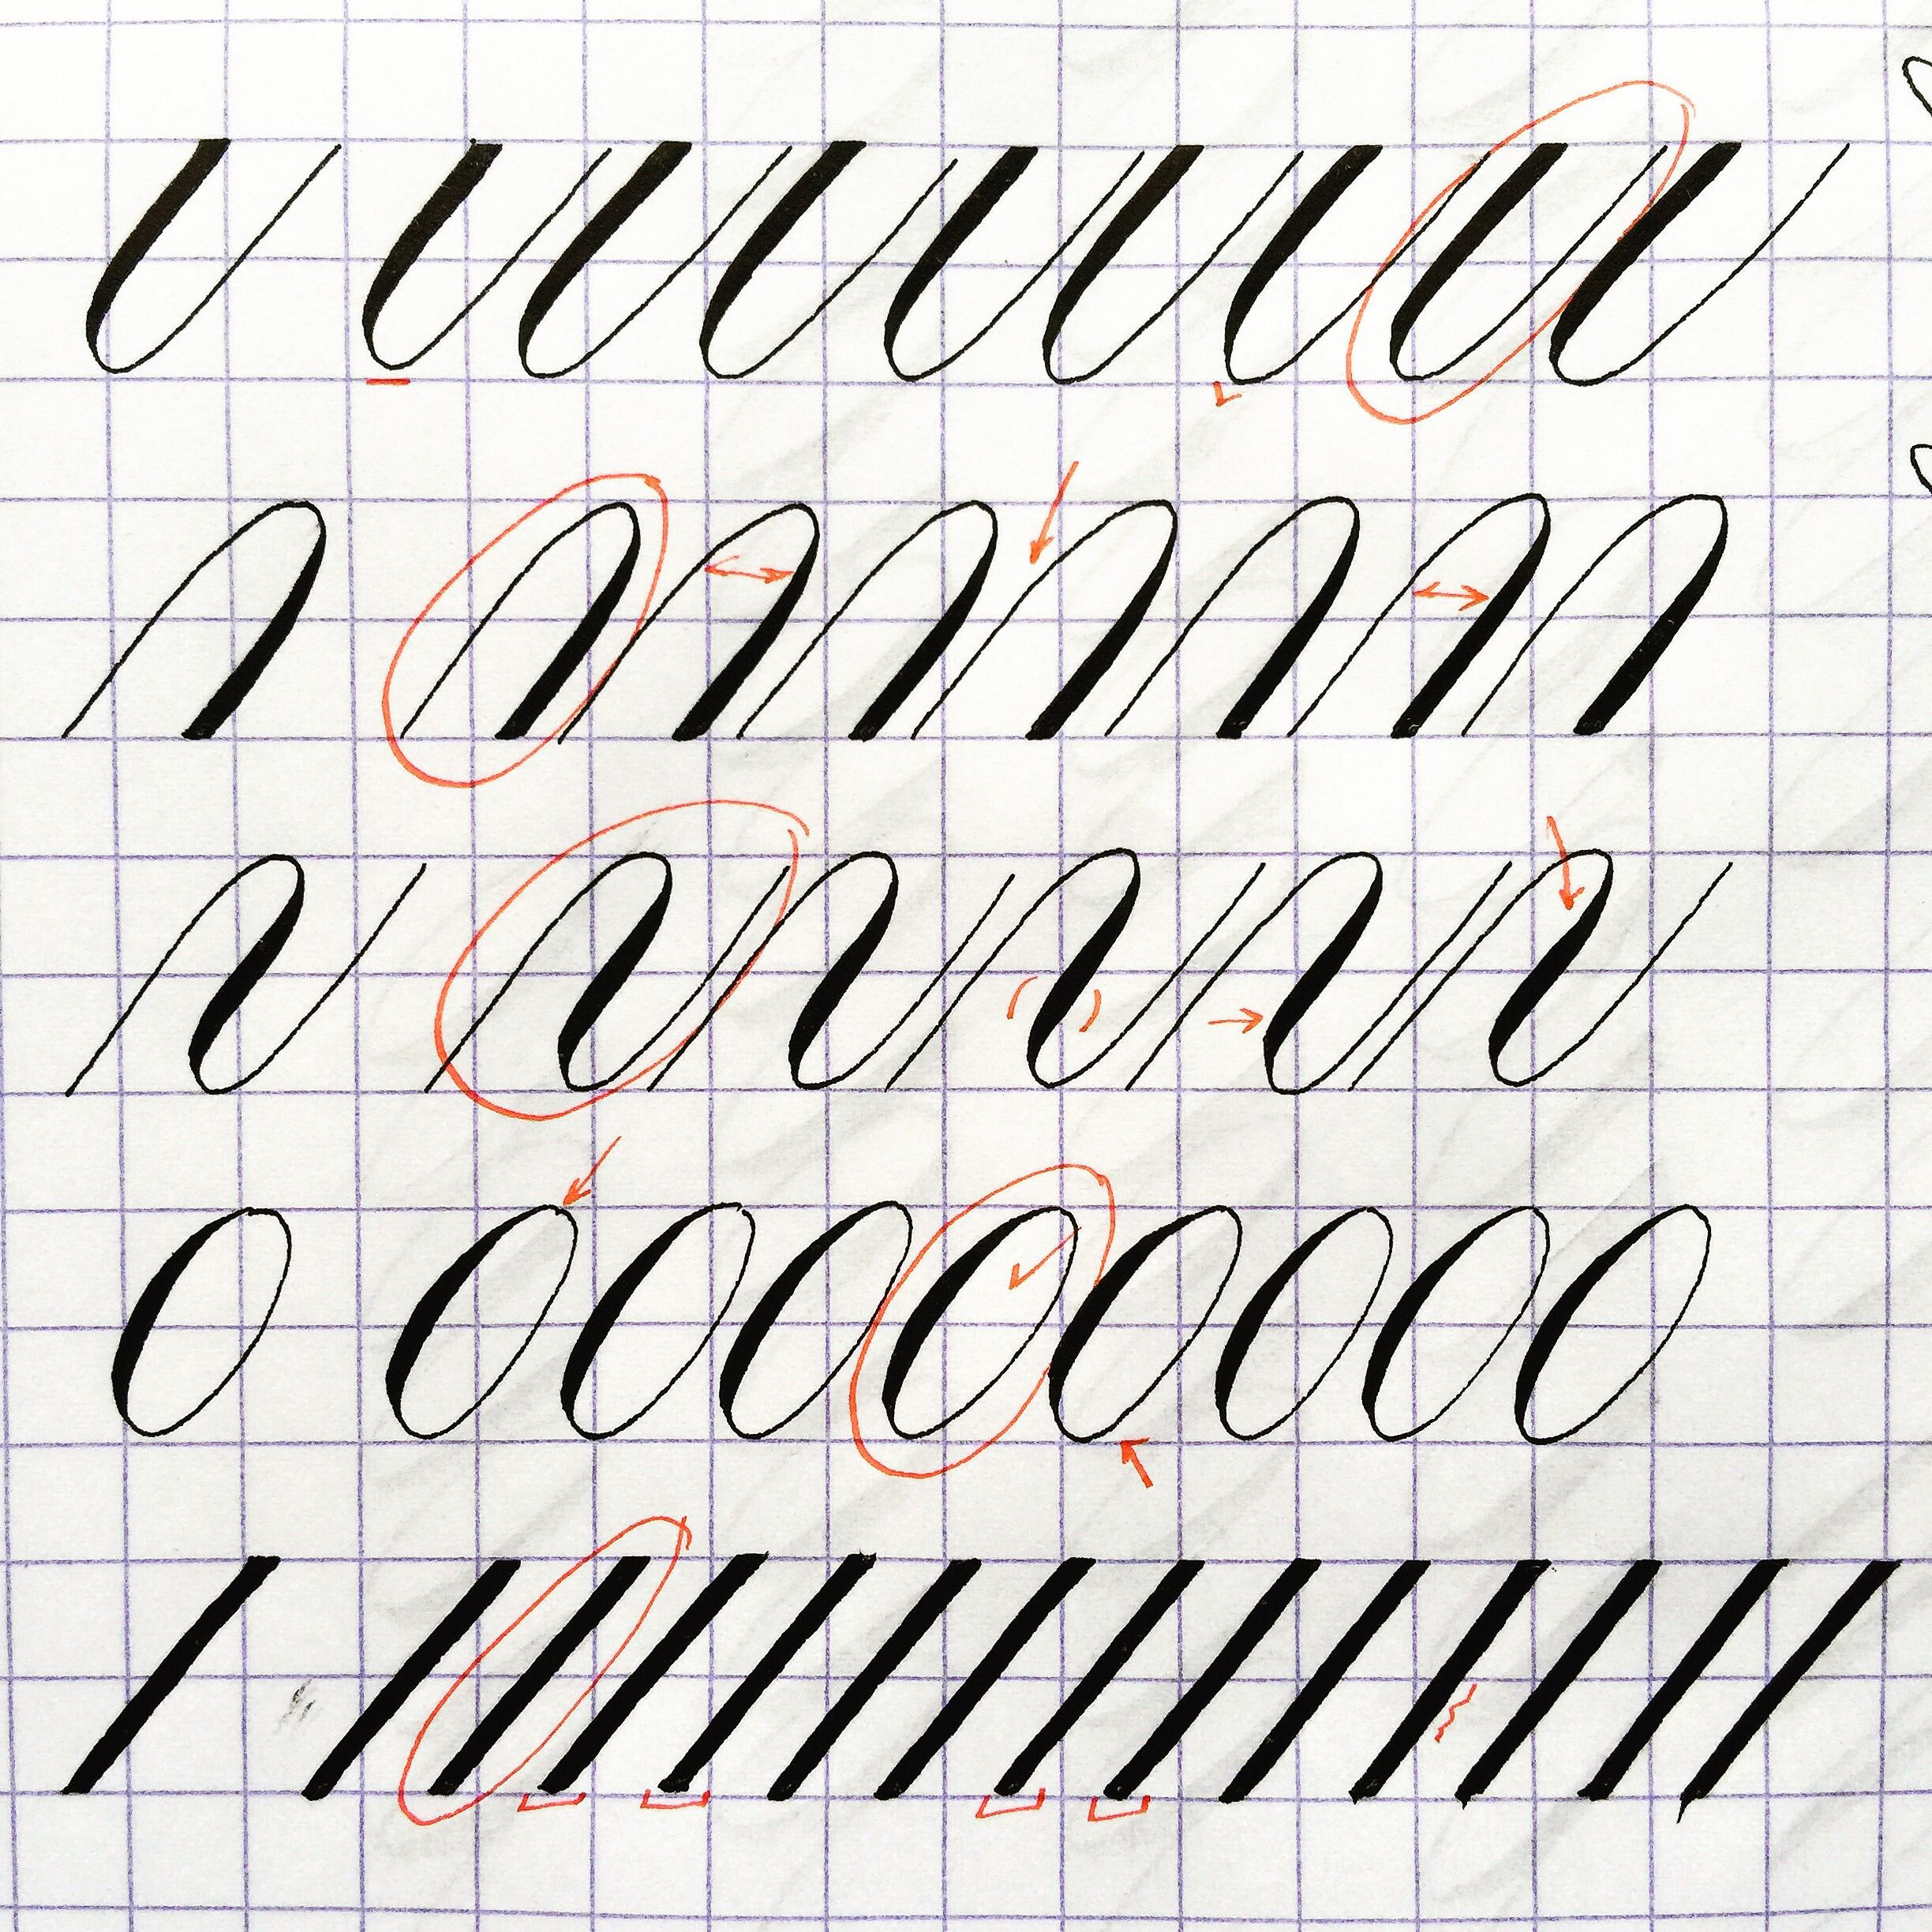 Learning copperplate requires careful study and practice